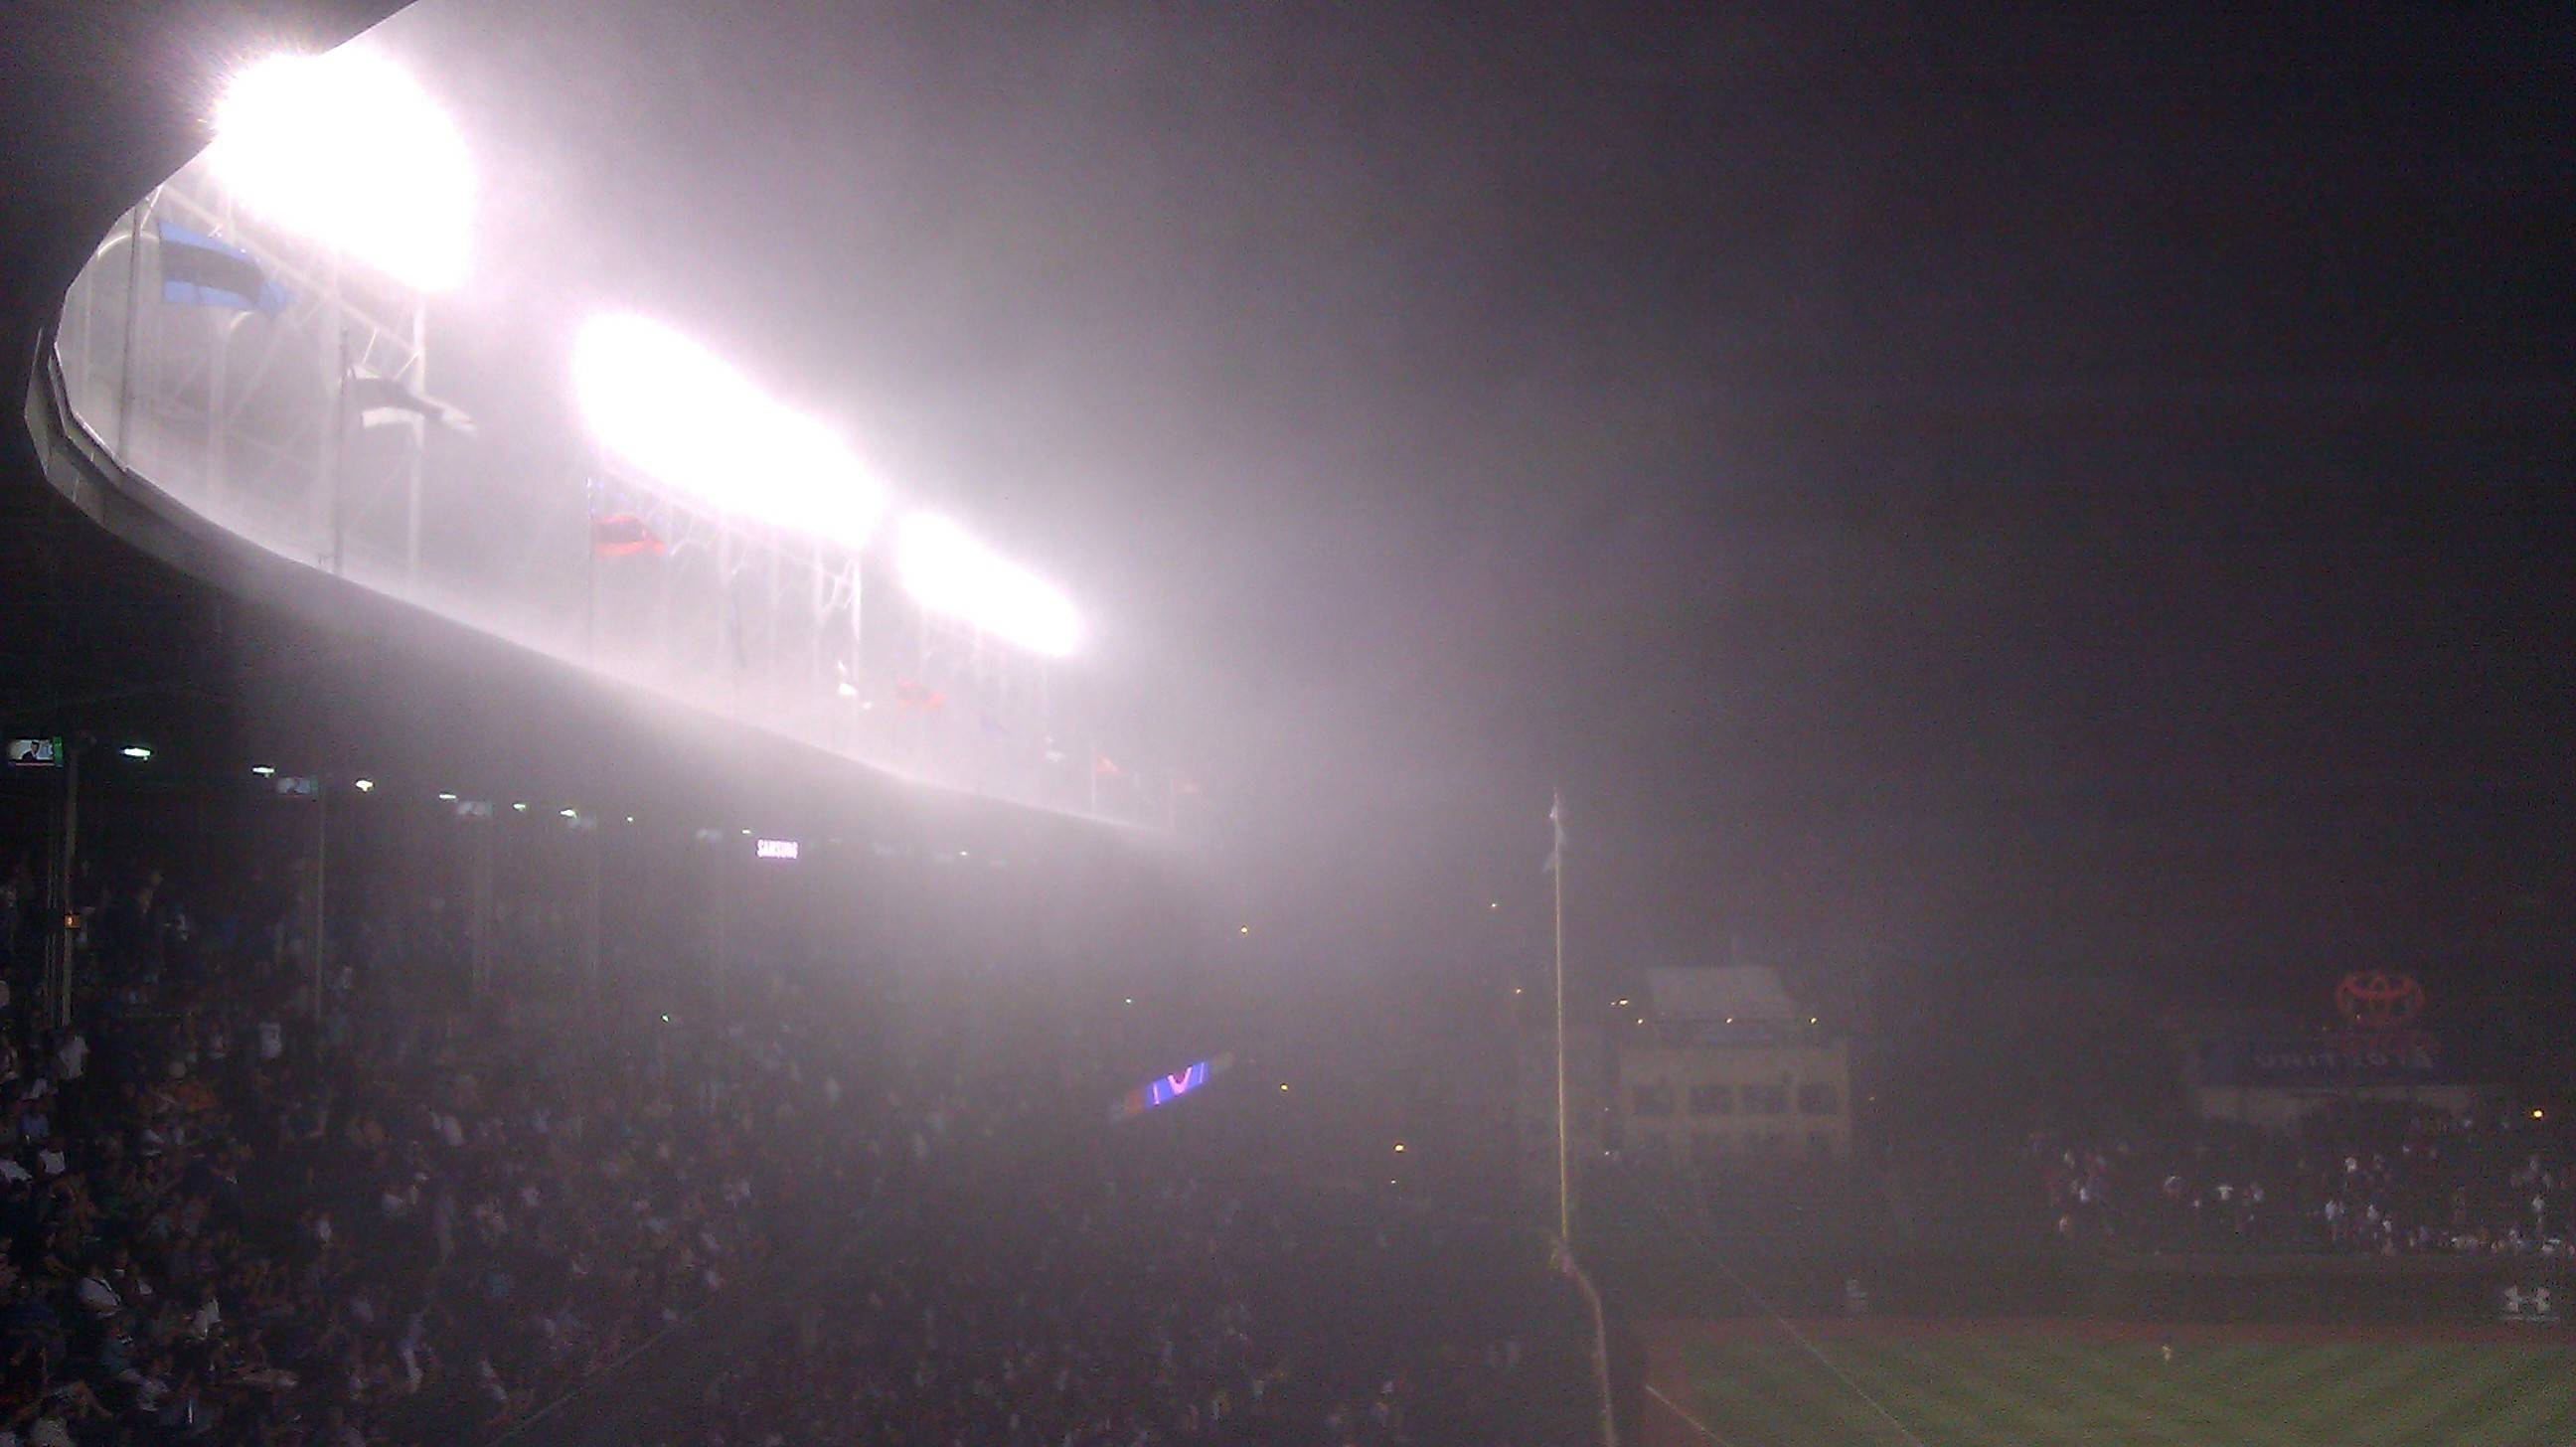 The heavy rain didn't last very long last night at Wrigley Field, but it was long enough to drench the field not covered by an unsuspecting umpire and grounds crew, so the delay lasted past 1:15 a.m.